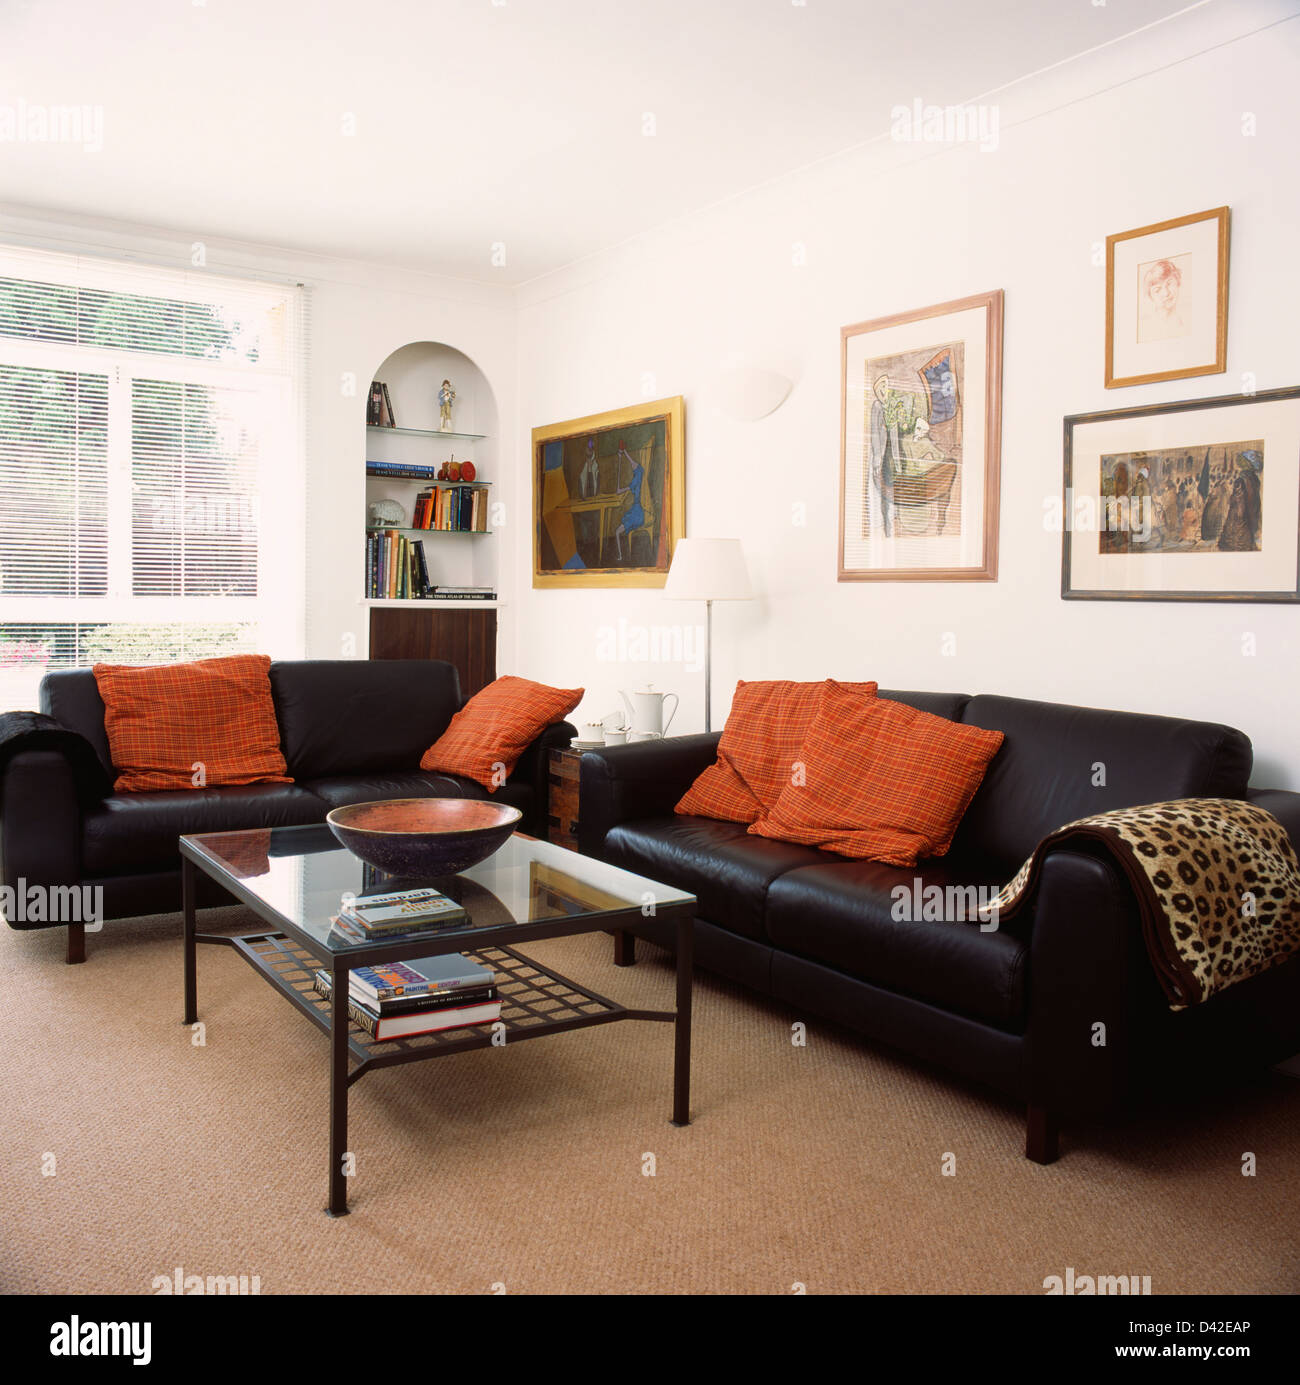 Orange Cushions On Black Leather Sofas In Living Room With Beige Carpet And  Glass Topped Coffee Table